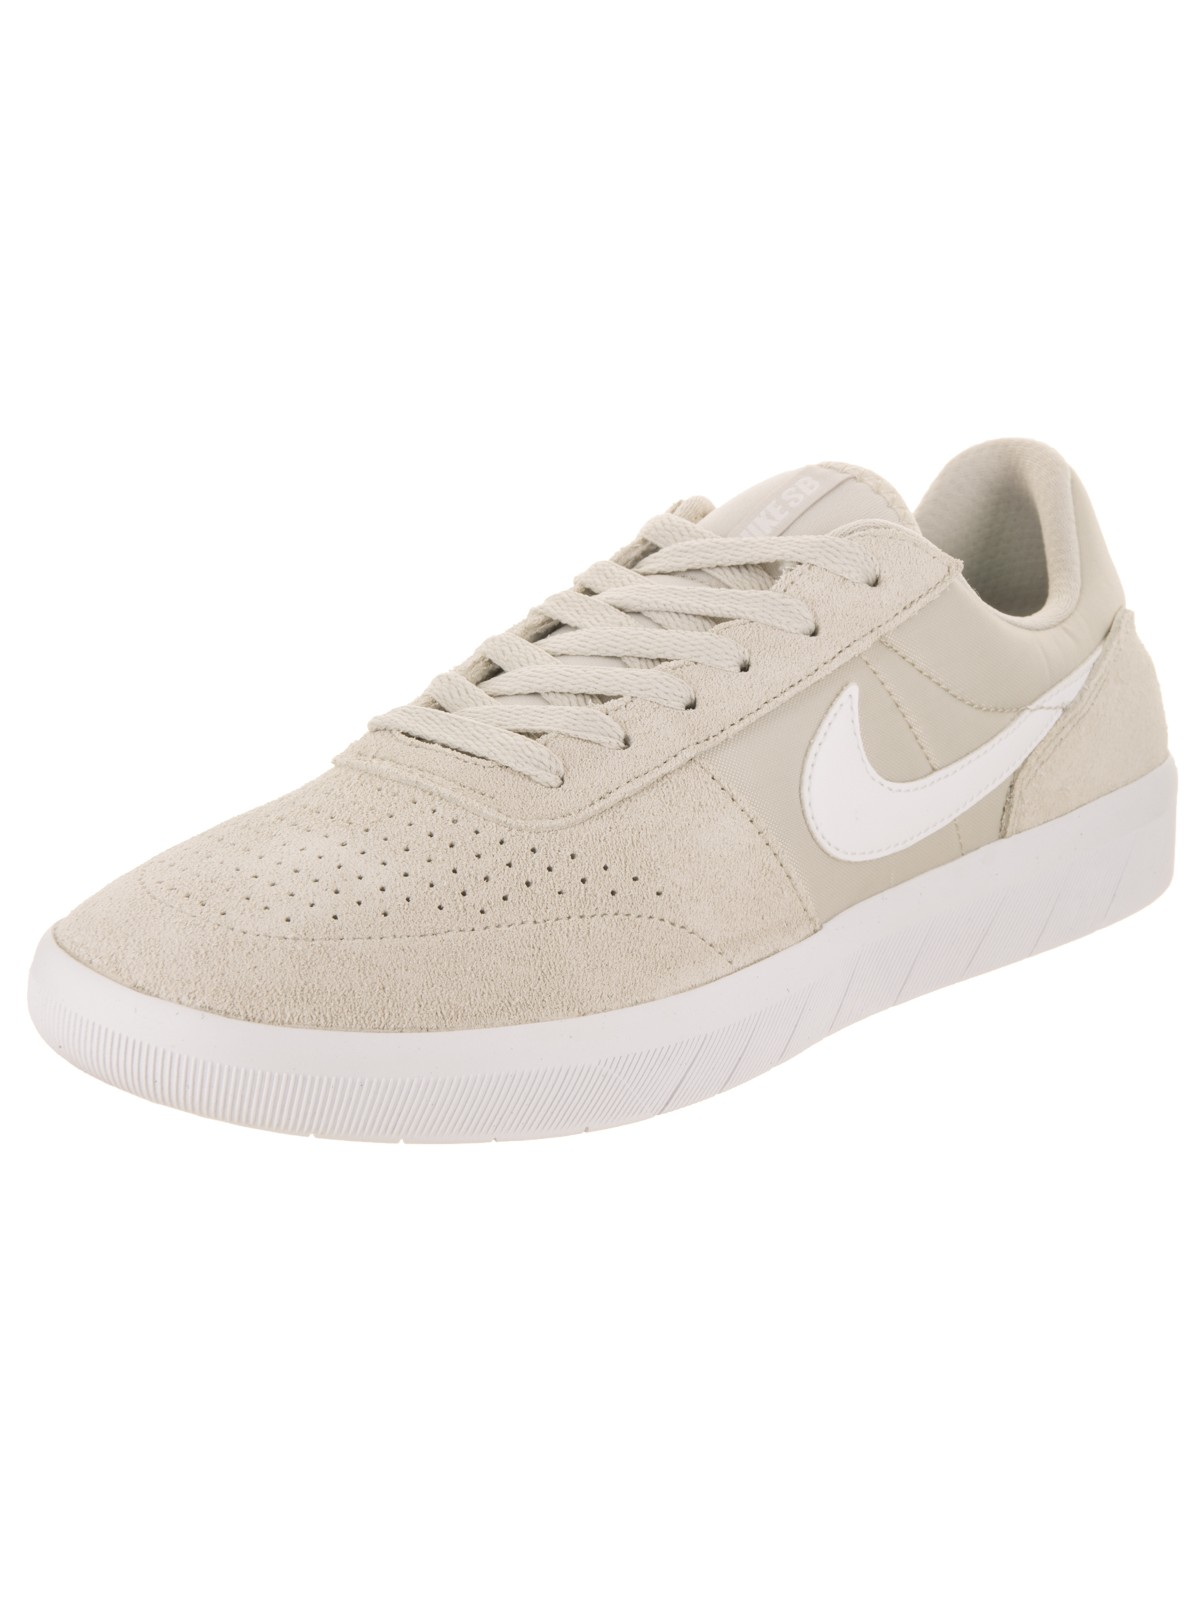 Nike Men's SB Team Classic Skate Shoe